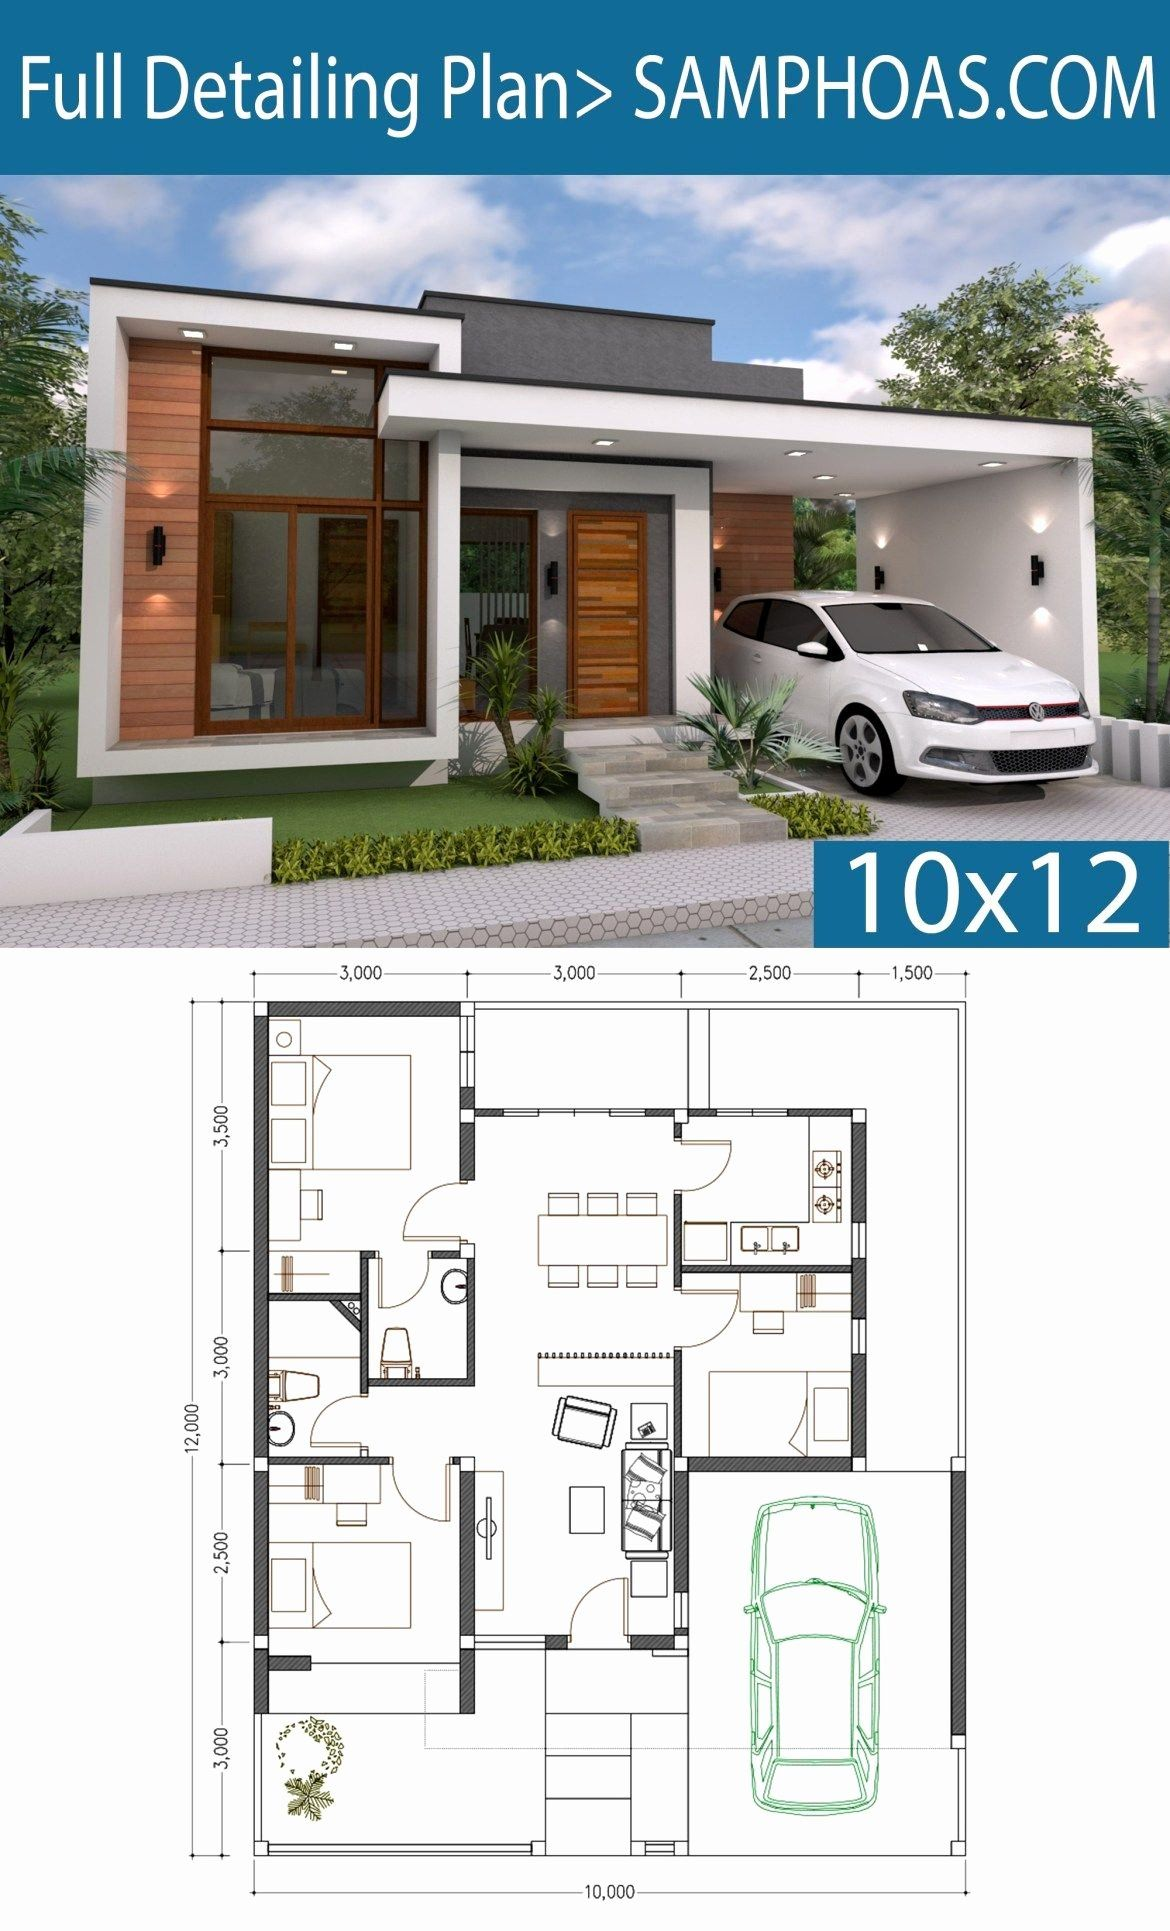 10 X 12 Bedroom Layout Luxury 3 Bedrooms Home Design Plan 10x12m In 2020 Bungalow House Plans Modern Style House Plans Simple House Design